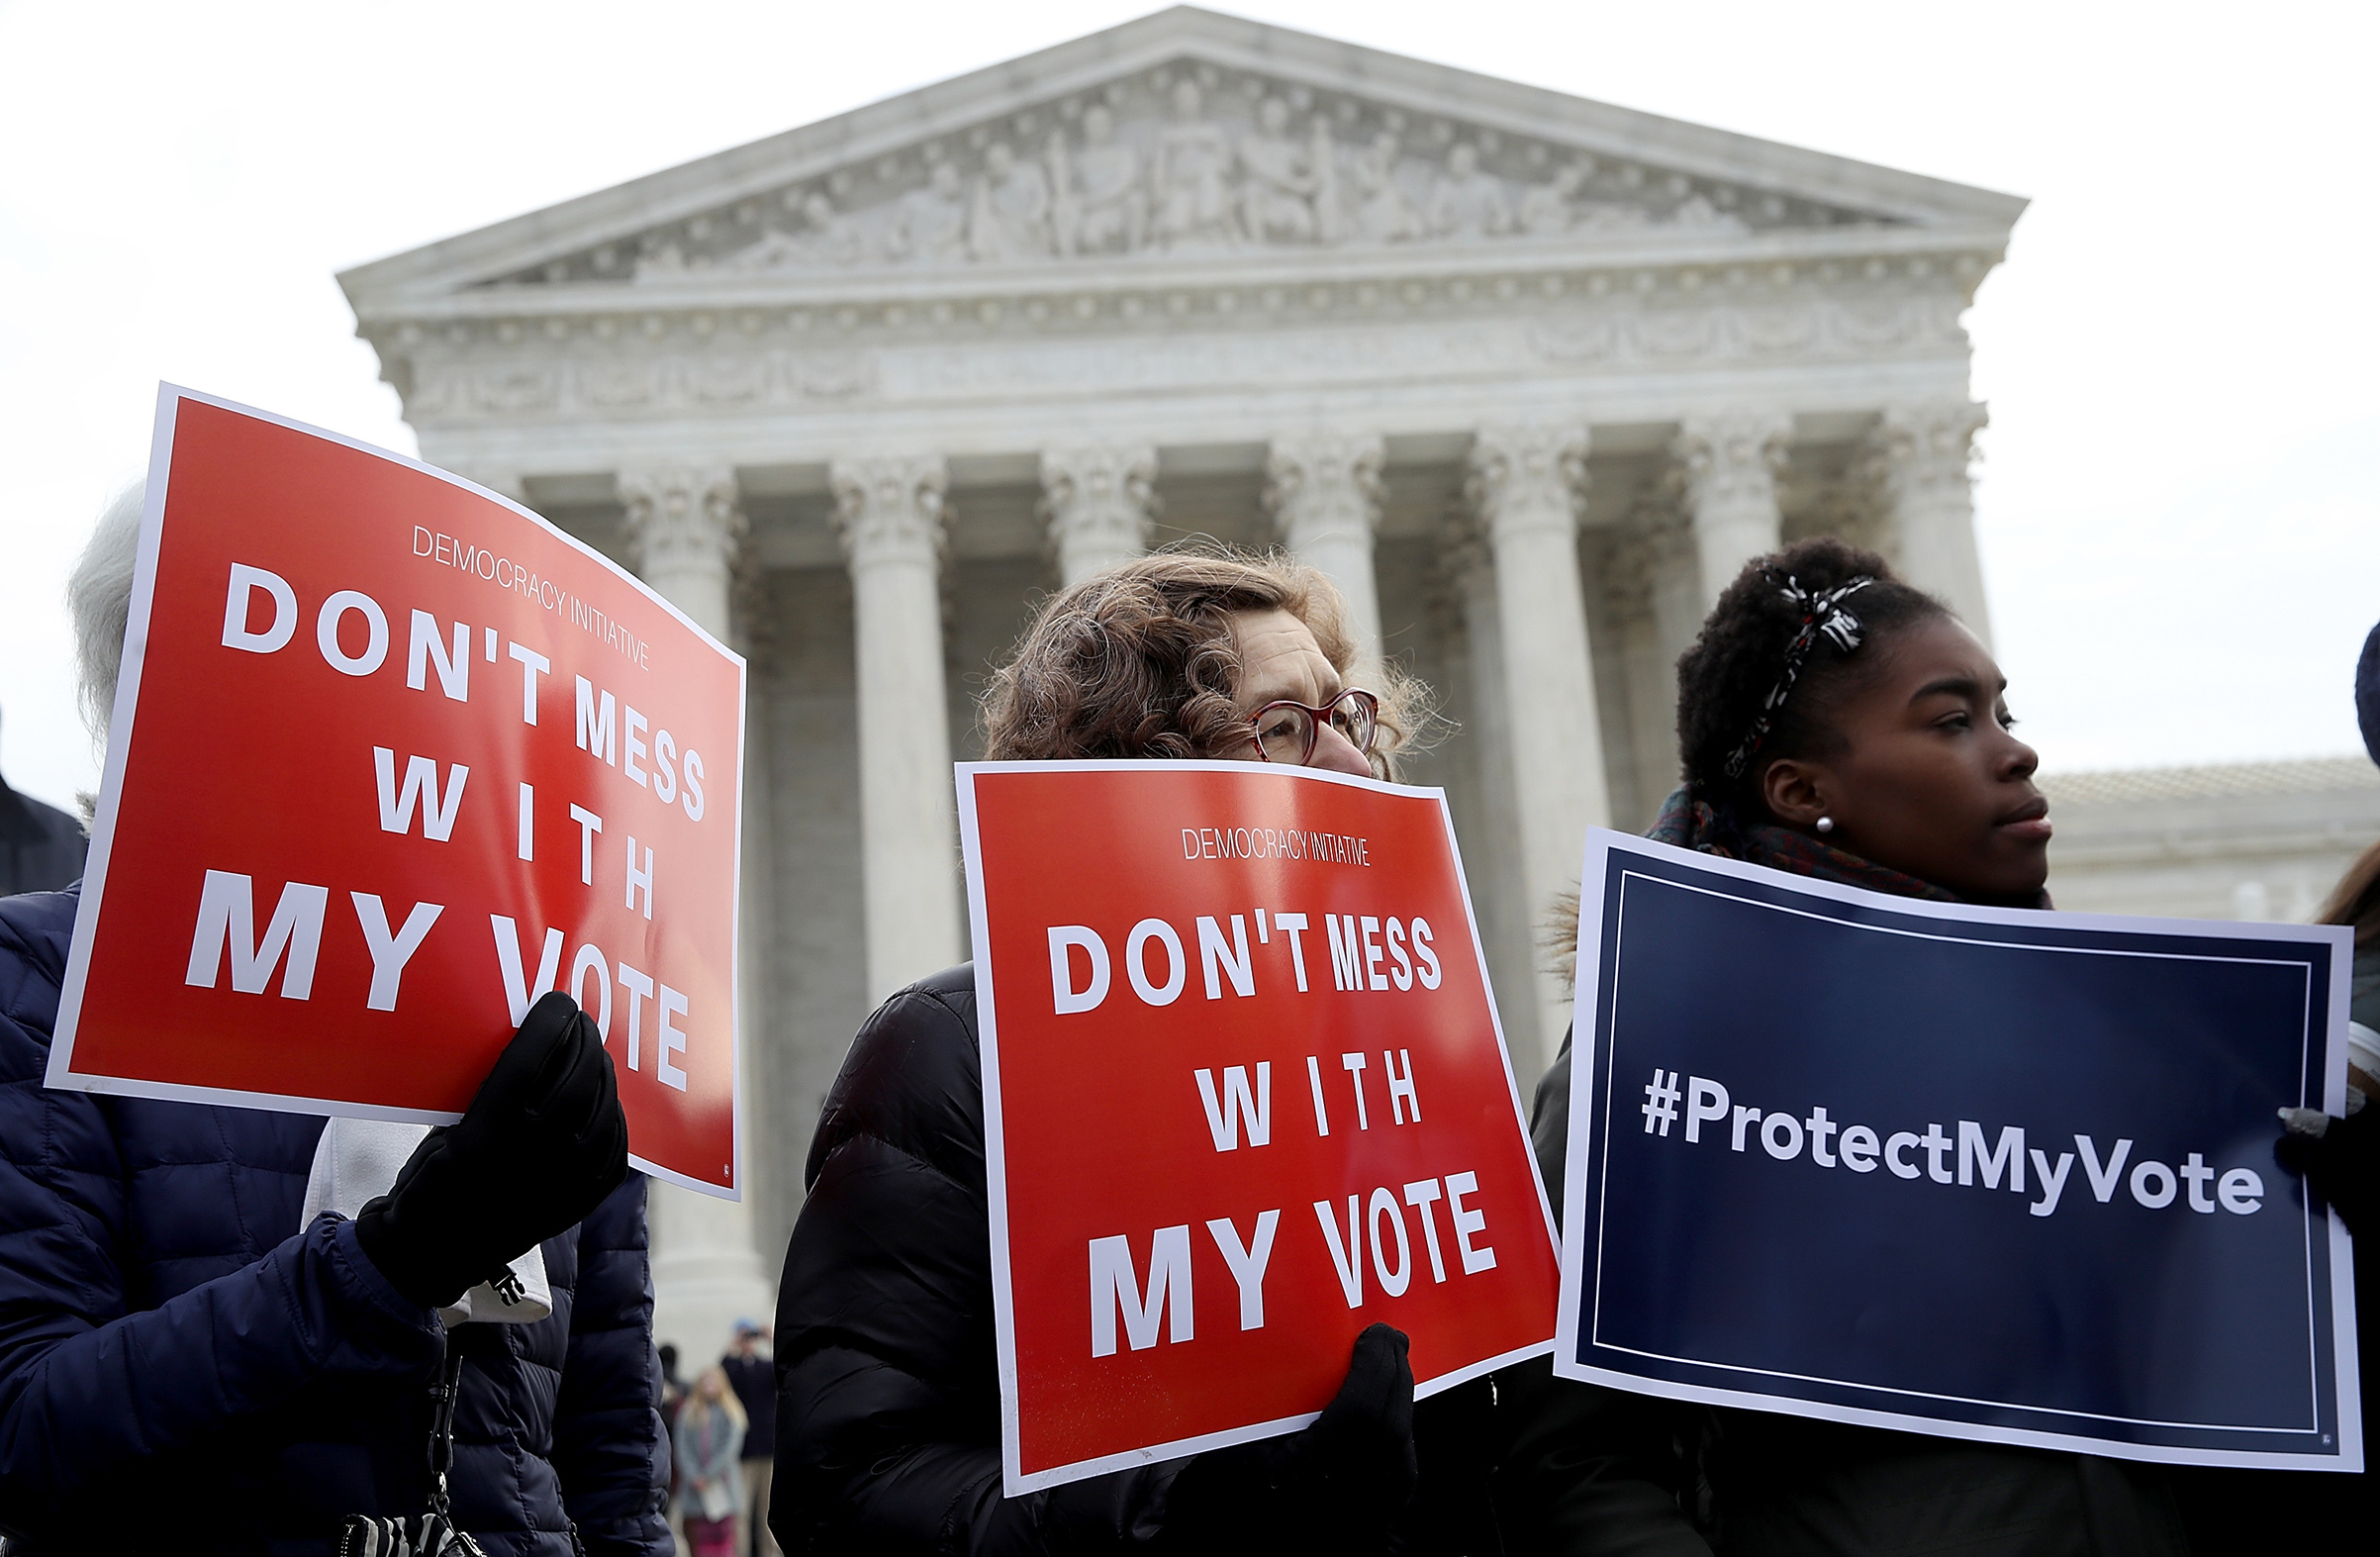 Protesters gather during a rally held by the group Common Cause in front of the U.S. Supreme Court January 10, 2018 in Washington, DC. Voting rights activists rallied to oppose voter roll purges as the Supreme Court hears oral arguments in the Husted v. A Philip Randolph Institute, a challenge to Ohio's voter roll purges.